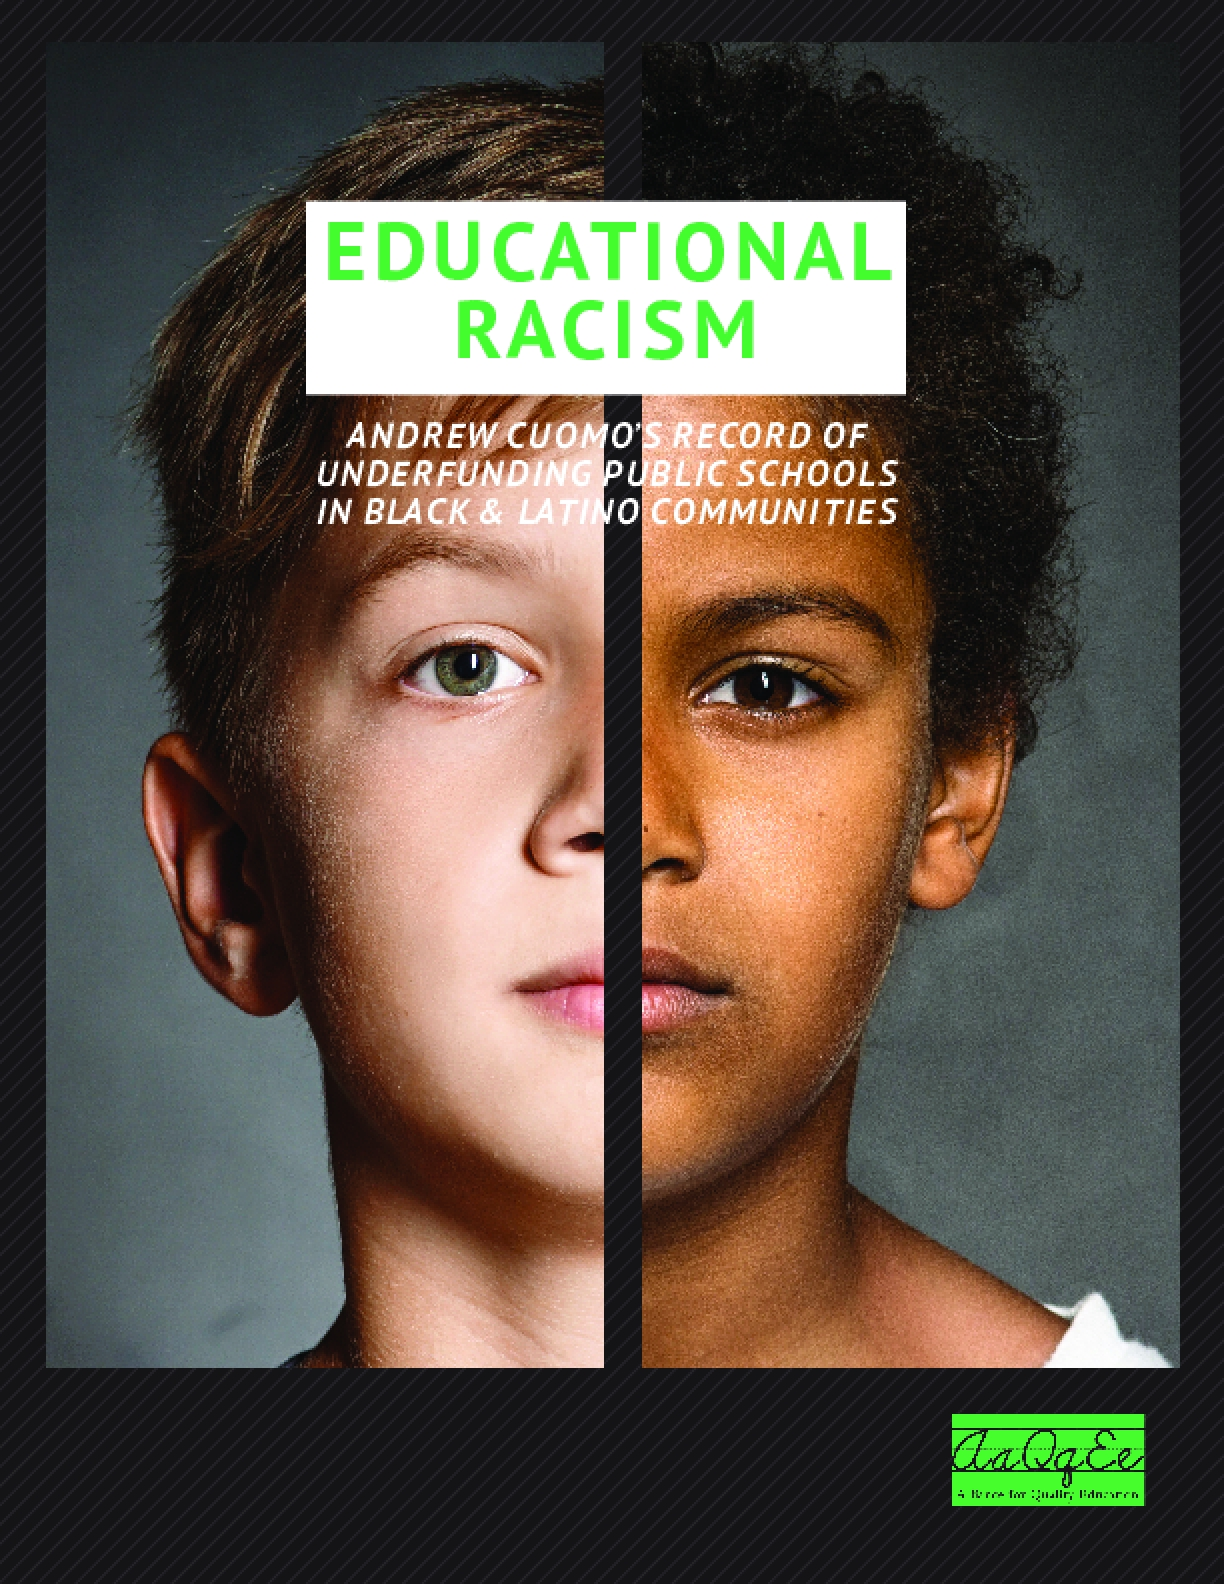 Educational Racism: Cuomo's Record of Underfunding Schools in Black & Latino Communities